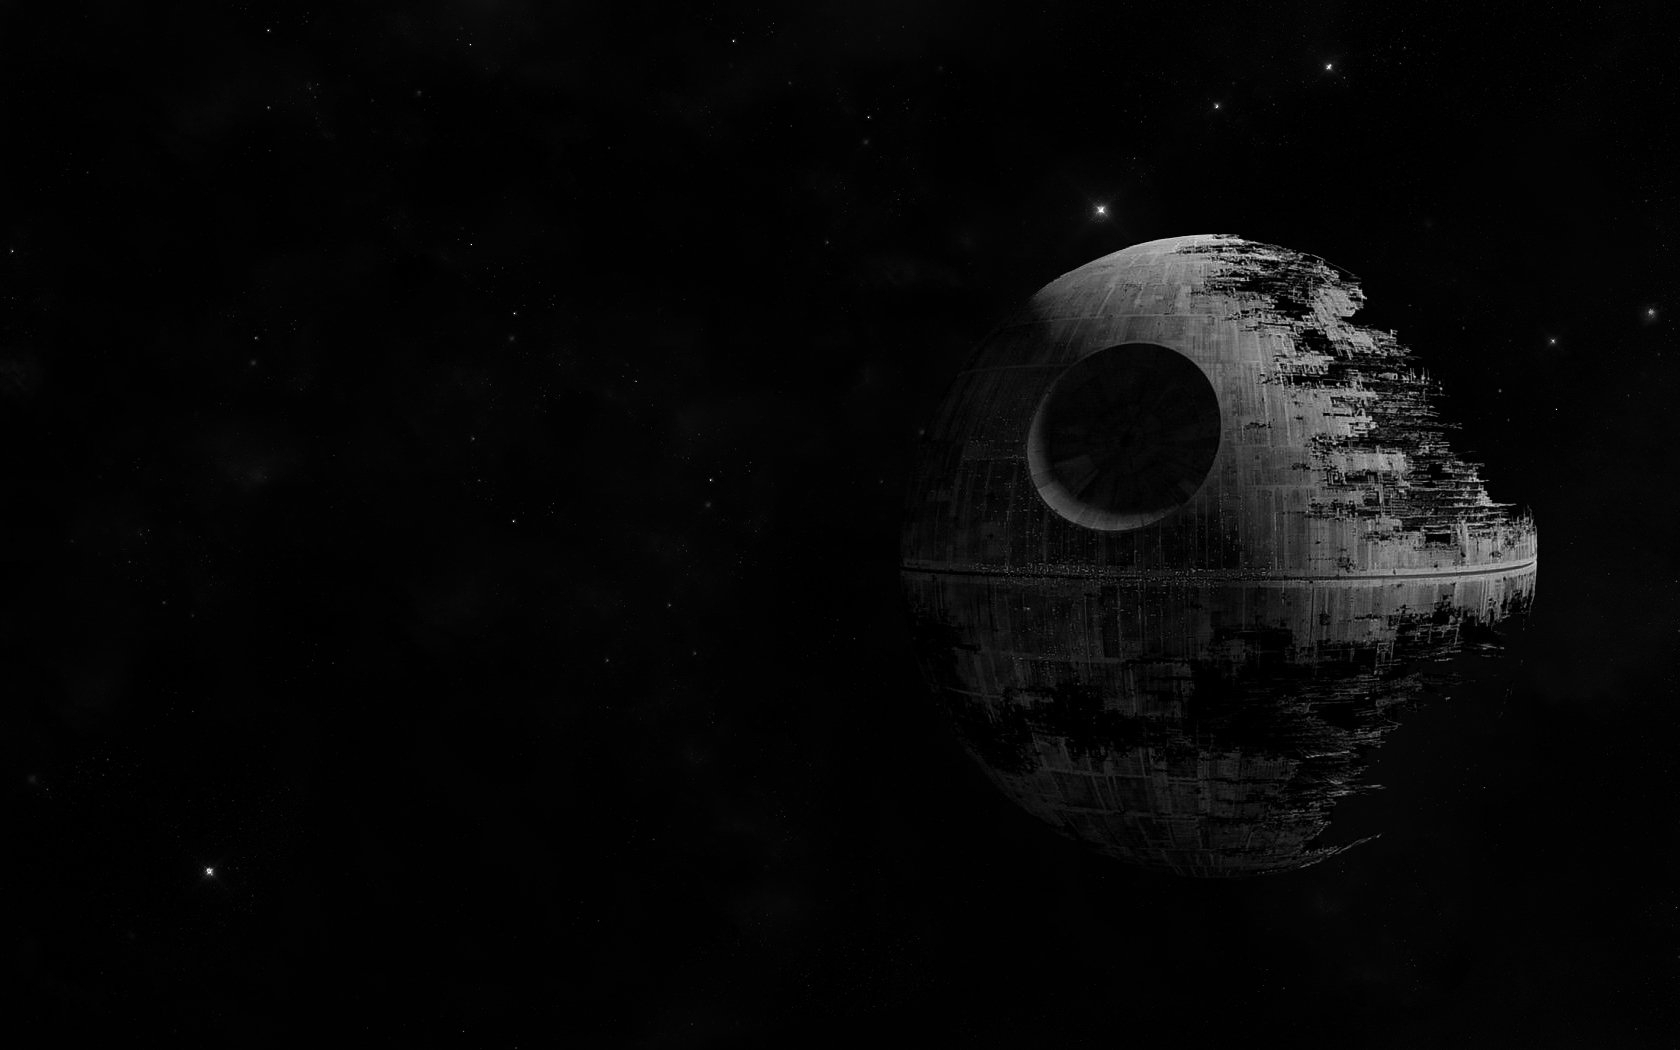 10 New Death Star Hd Wallpaper FULL HD 1920×1080 For PC Desktop